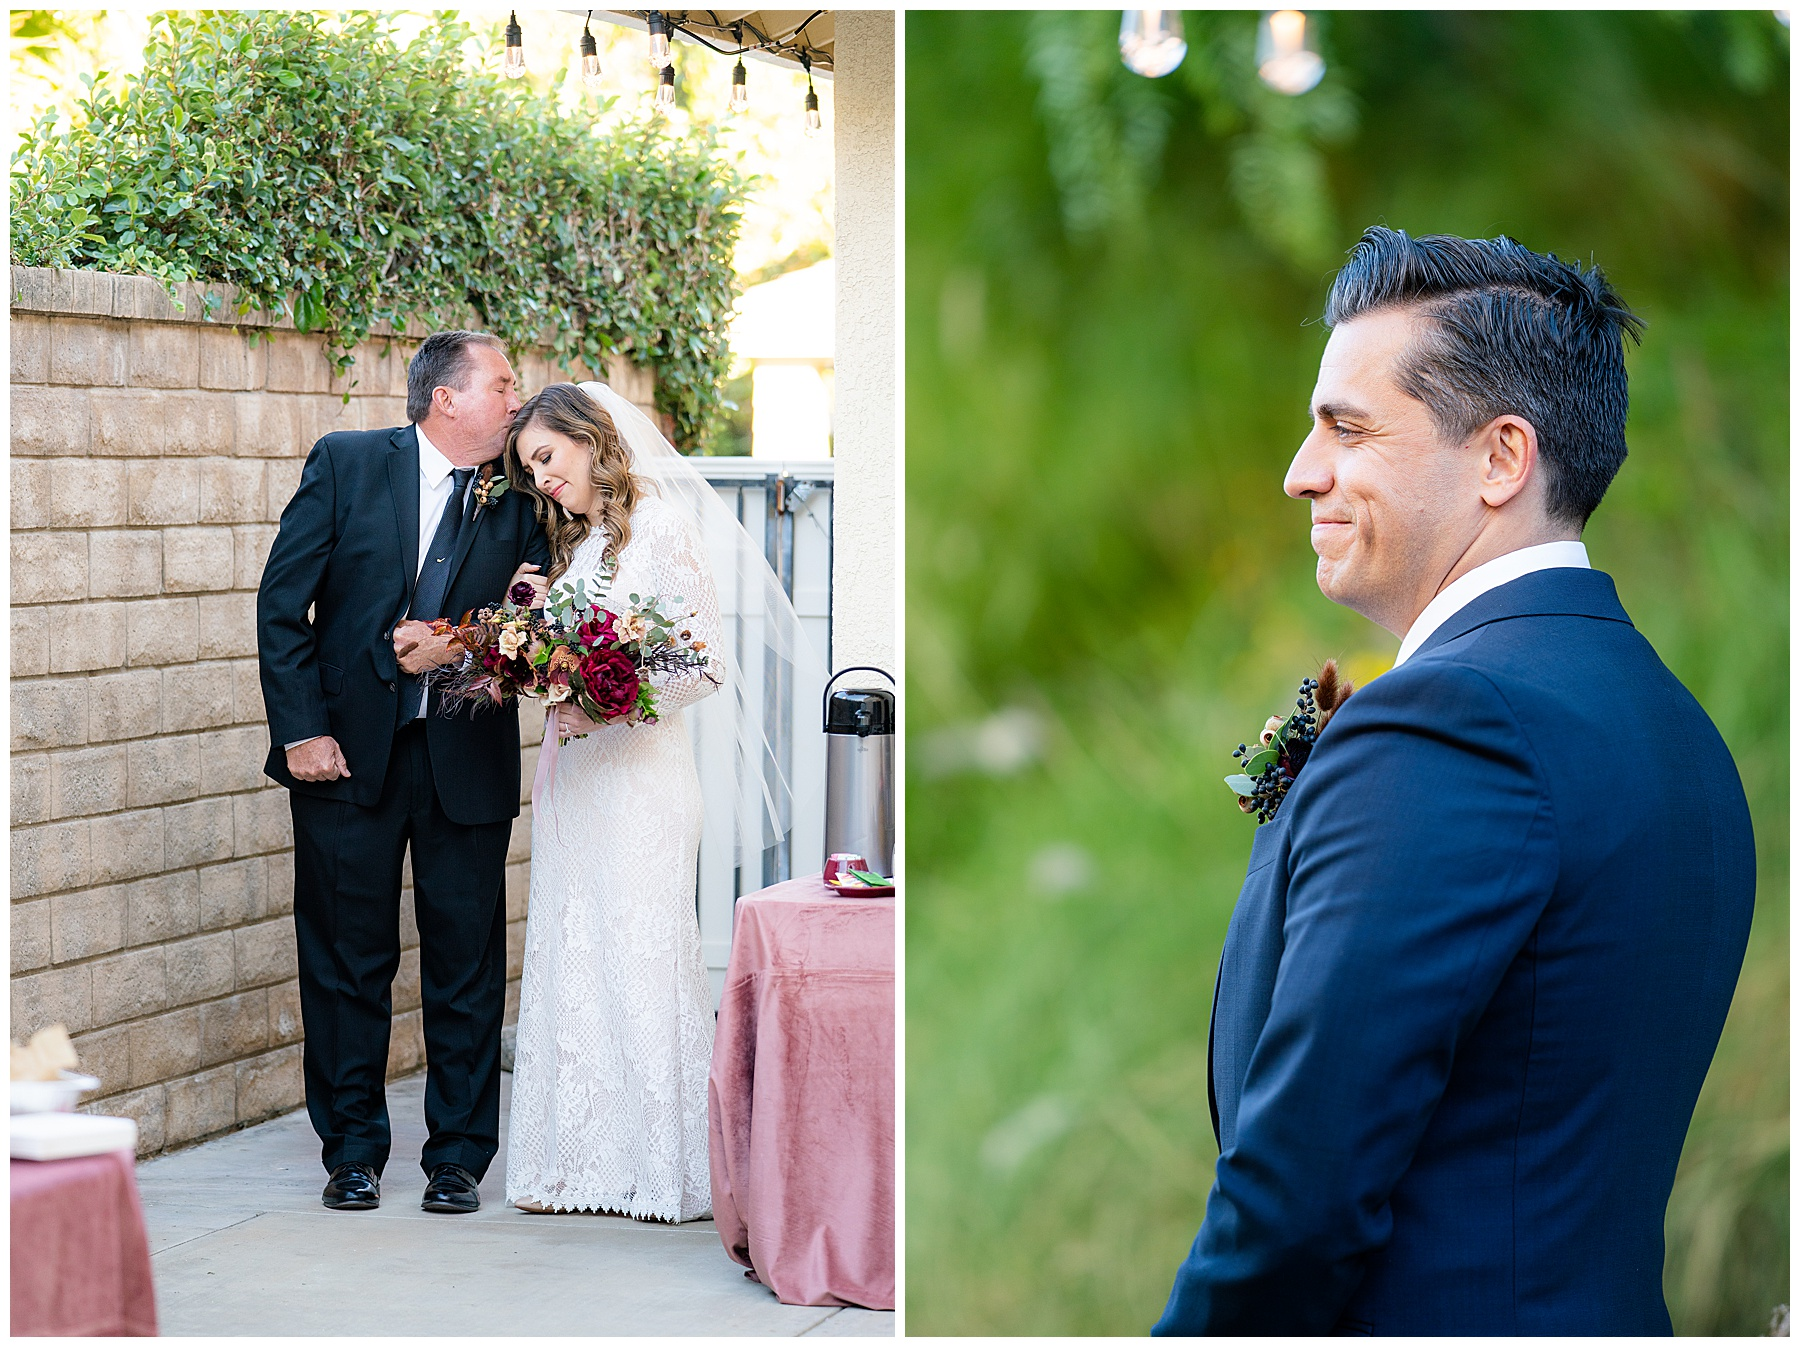 Father walks daughter down the aisle